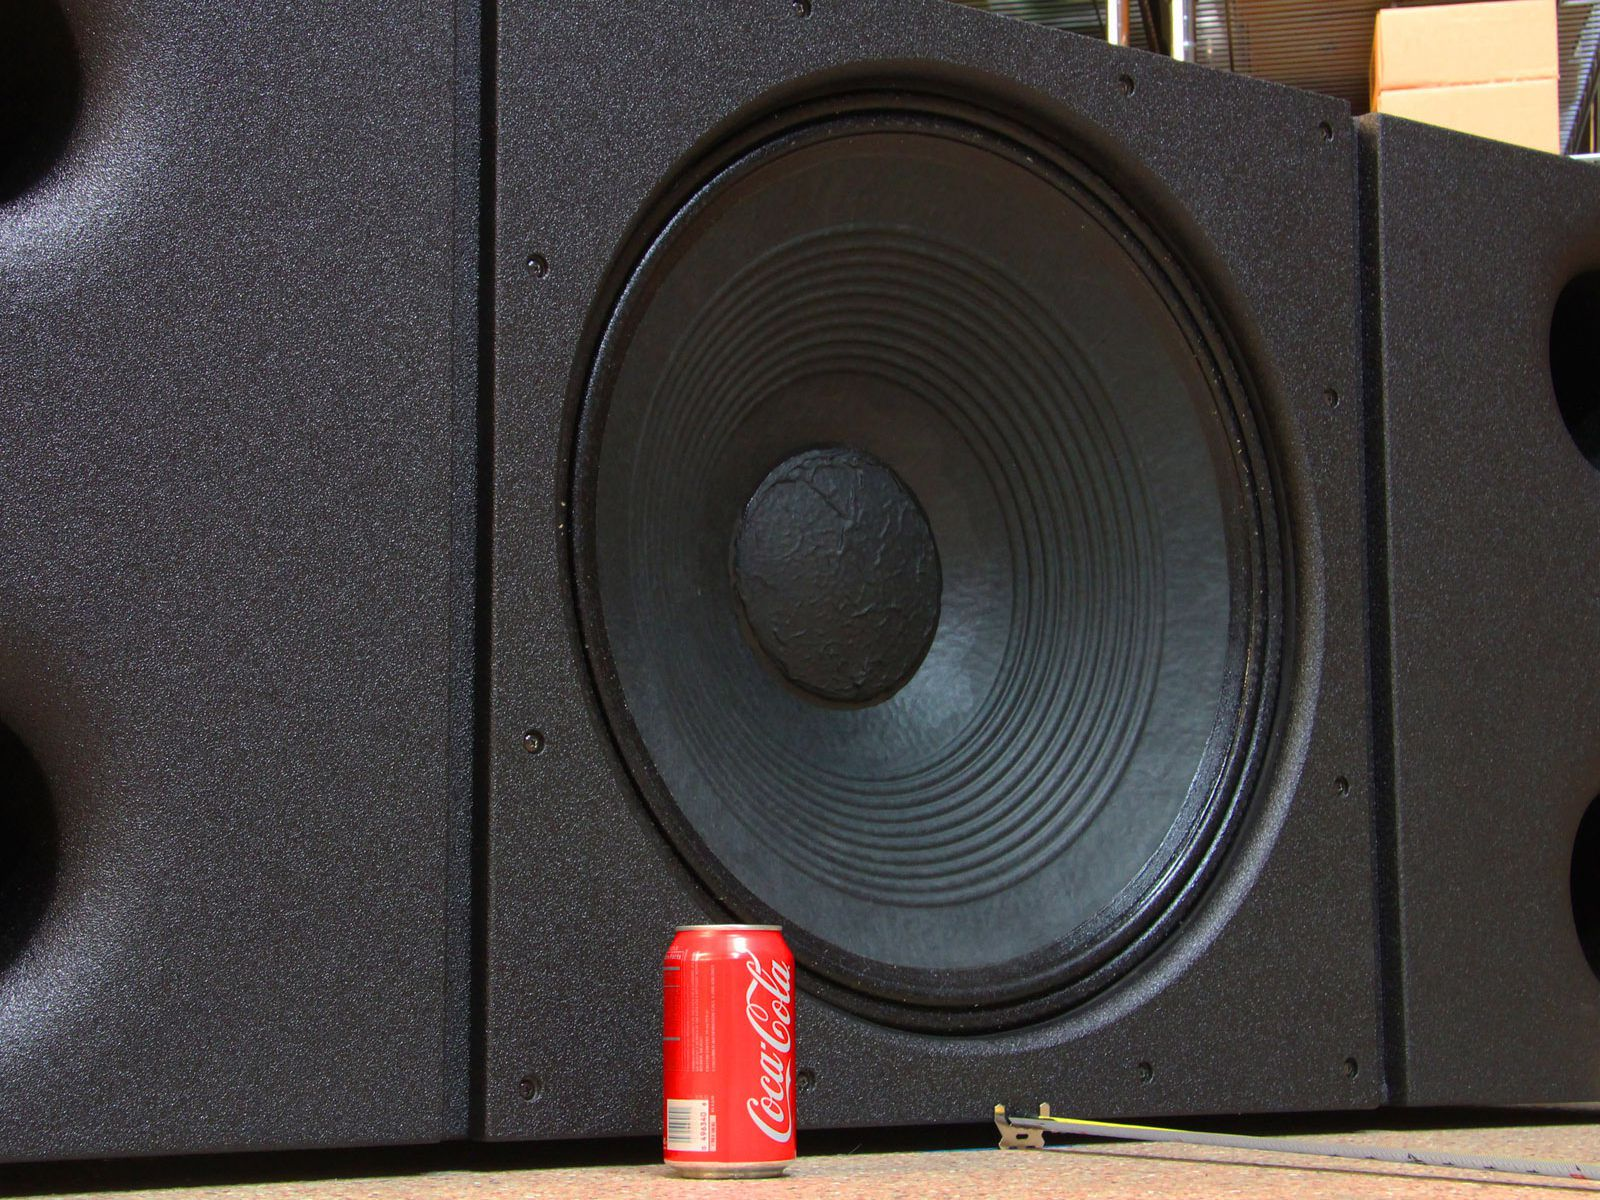 A 24-inch woofer + 1,800 watts = ???